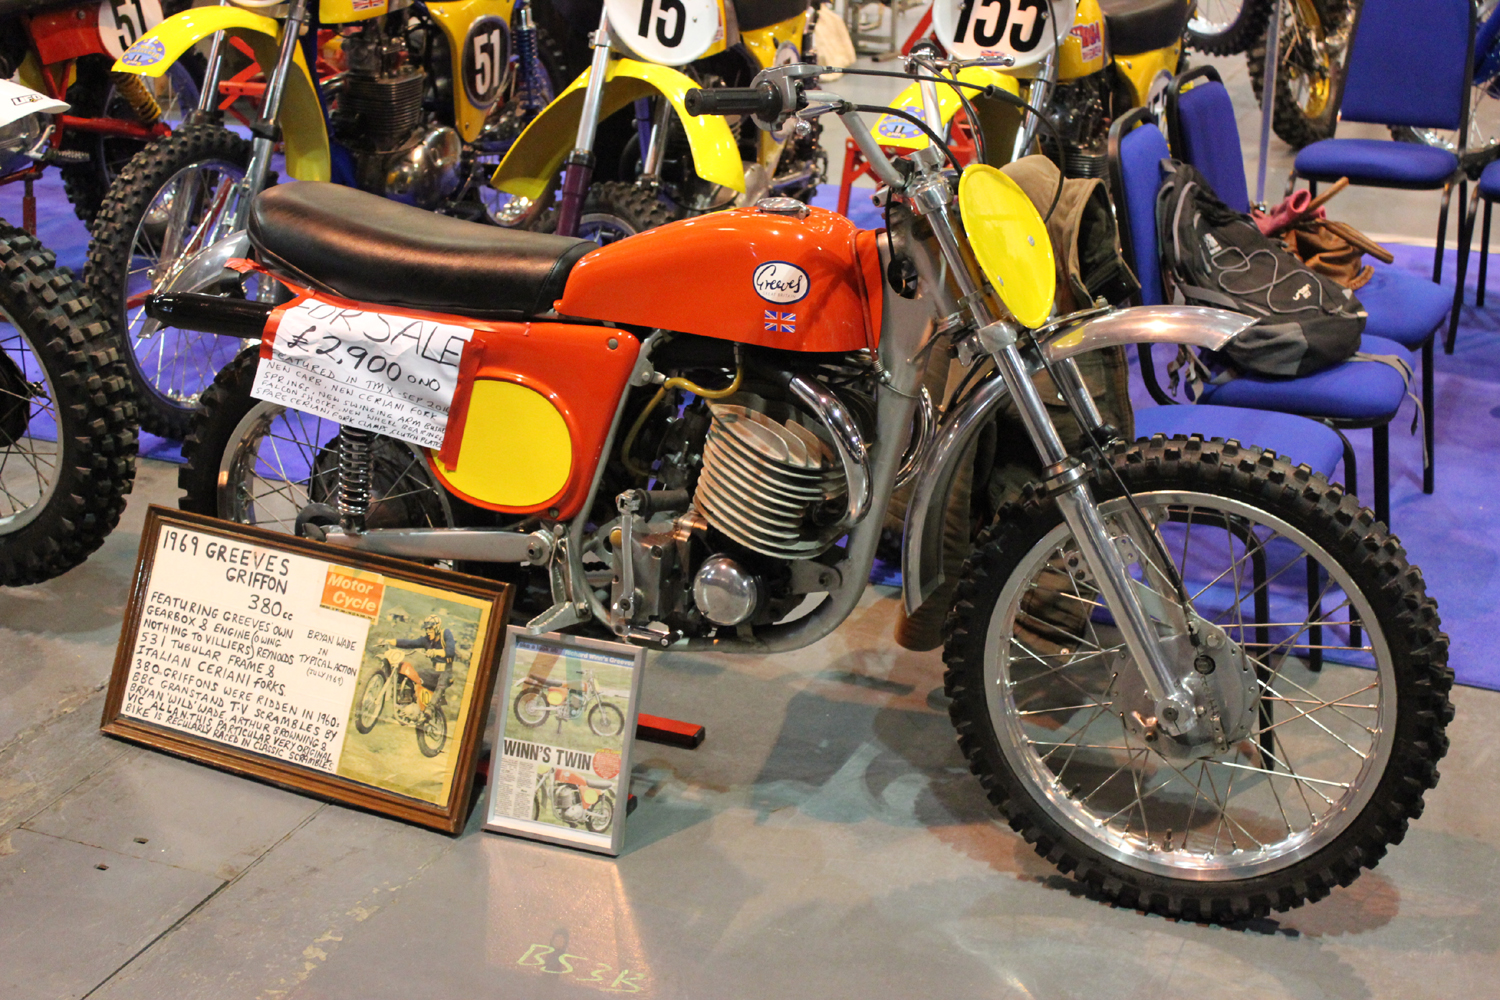 classicdirtbikerider.com-photo by Mr J-2015 Telford classic dirt bike show-GREEVES 380 GRIFFON SCRAMBLER